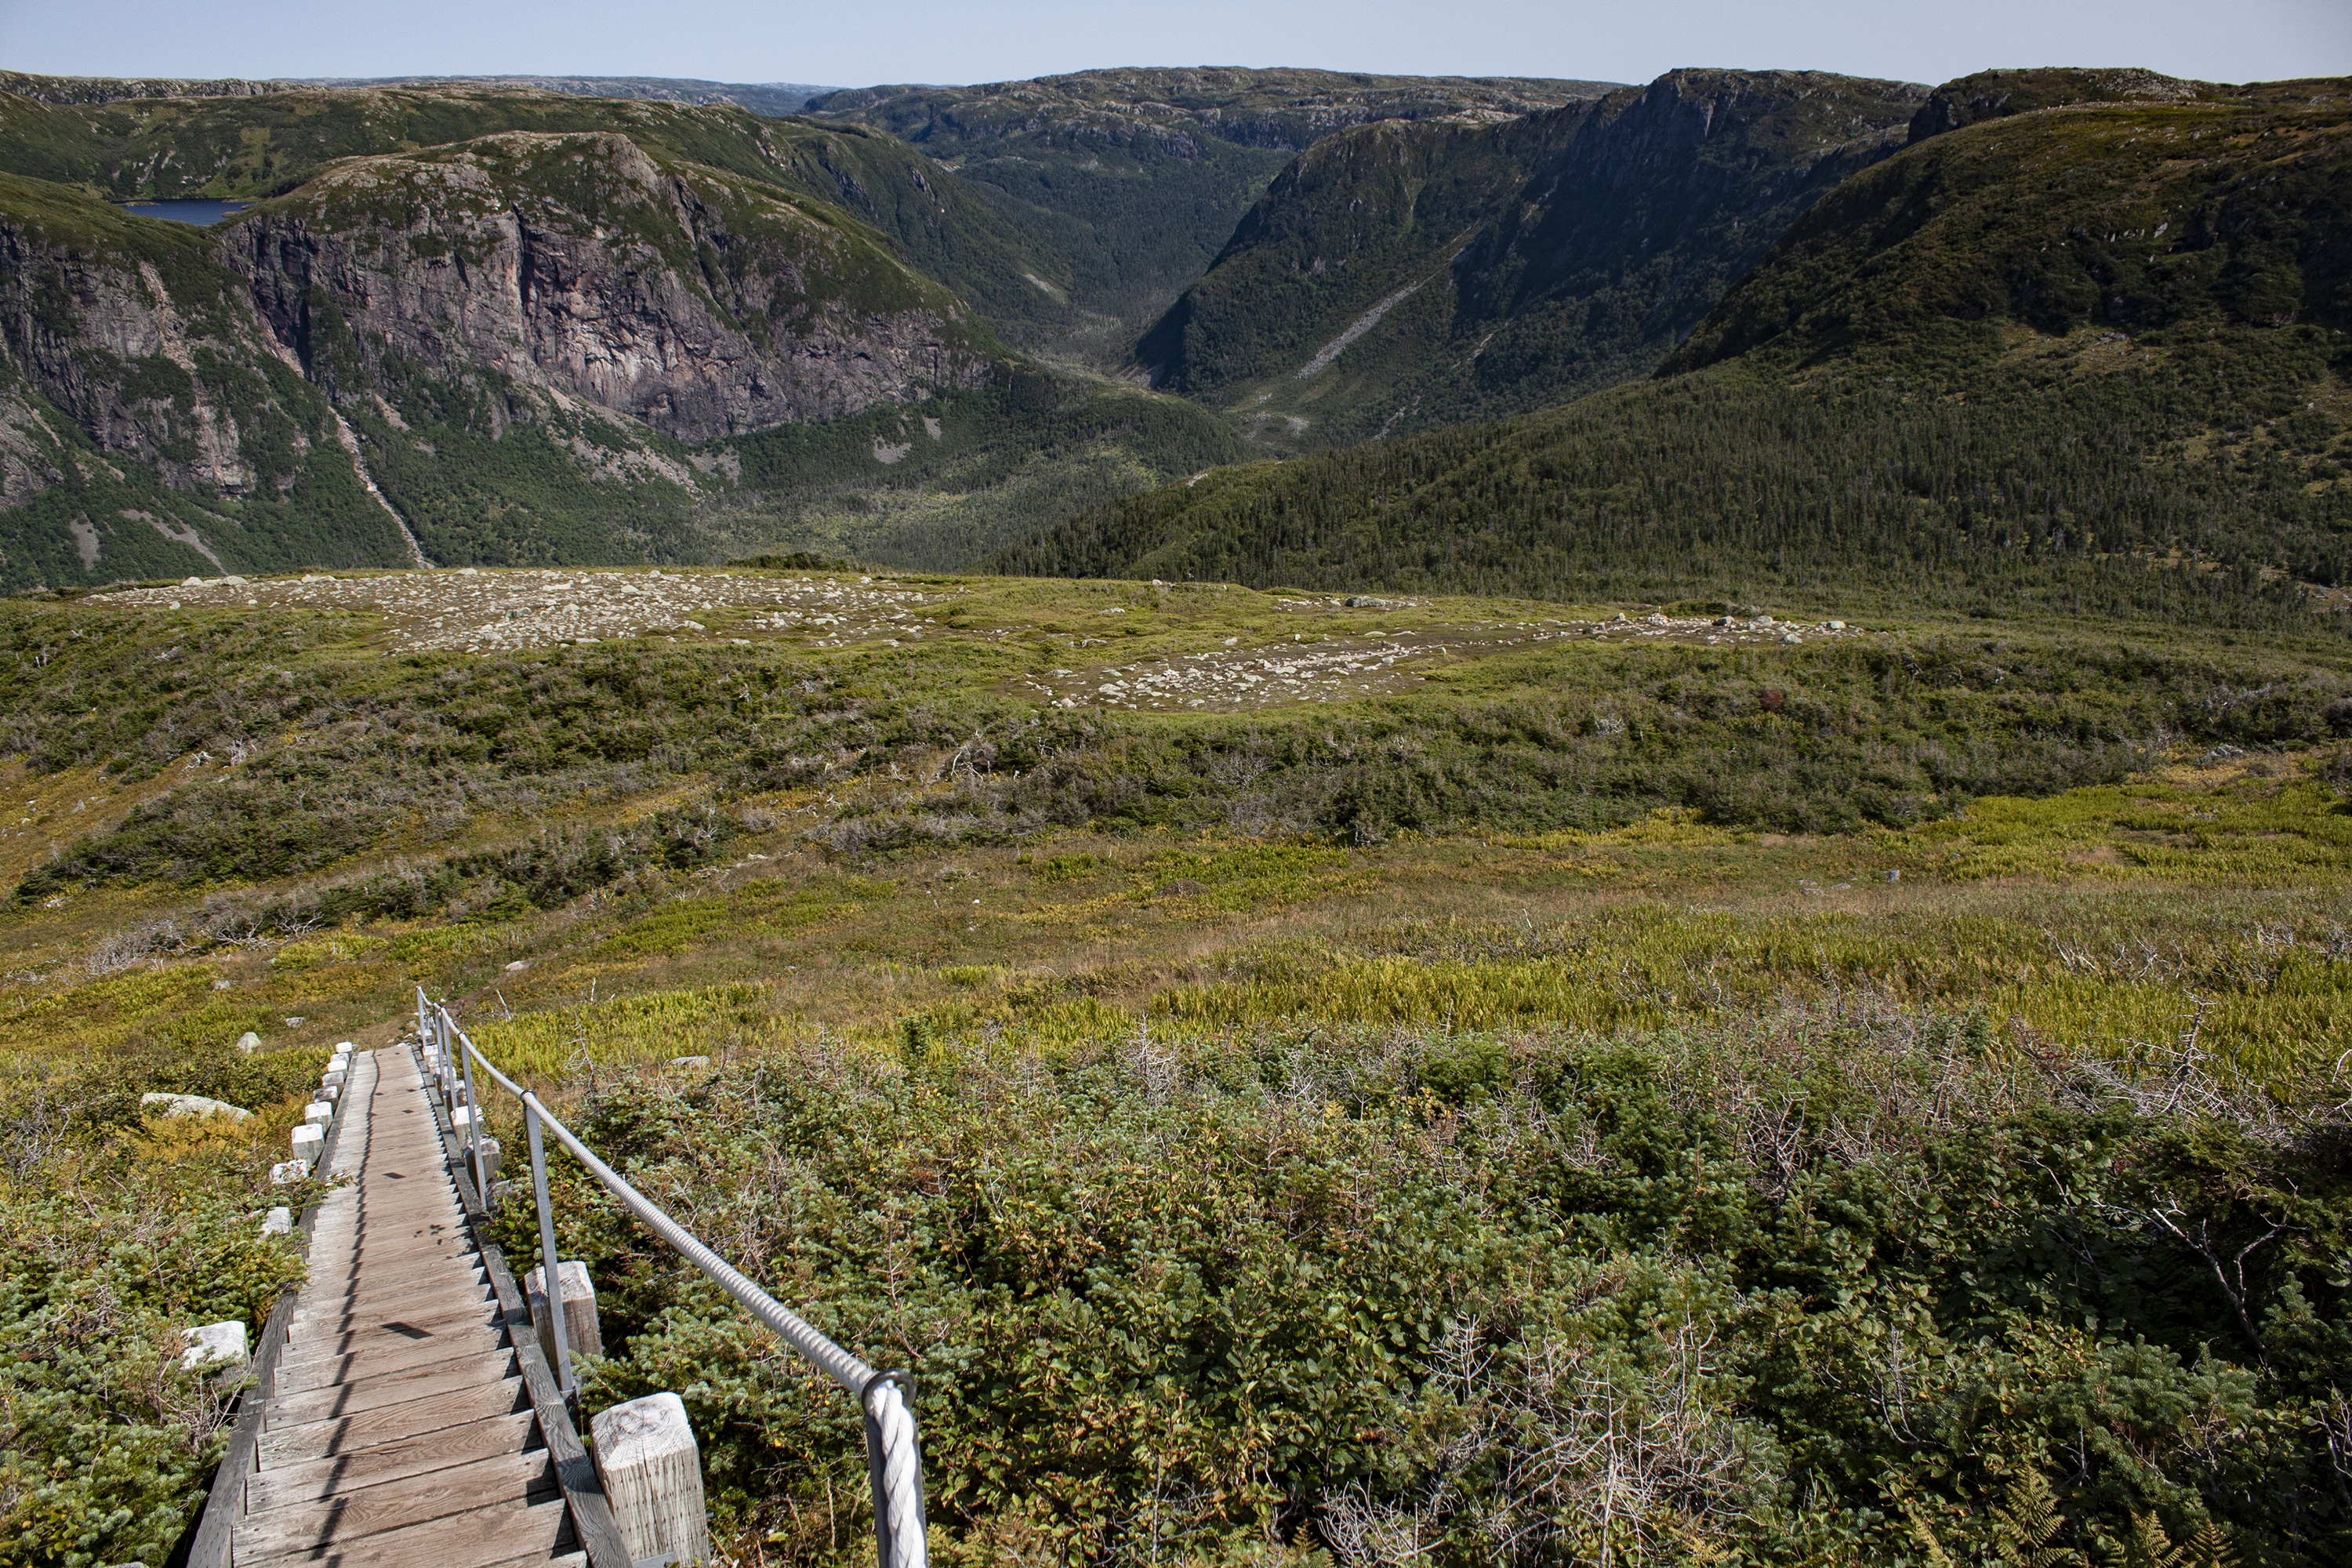 The downhill portion of the trail past the summit at Gros Morne Mountain, pictured on Aug. 31, 2017. (Steve Silva)